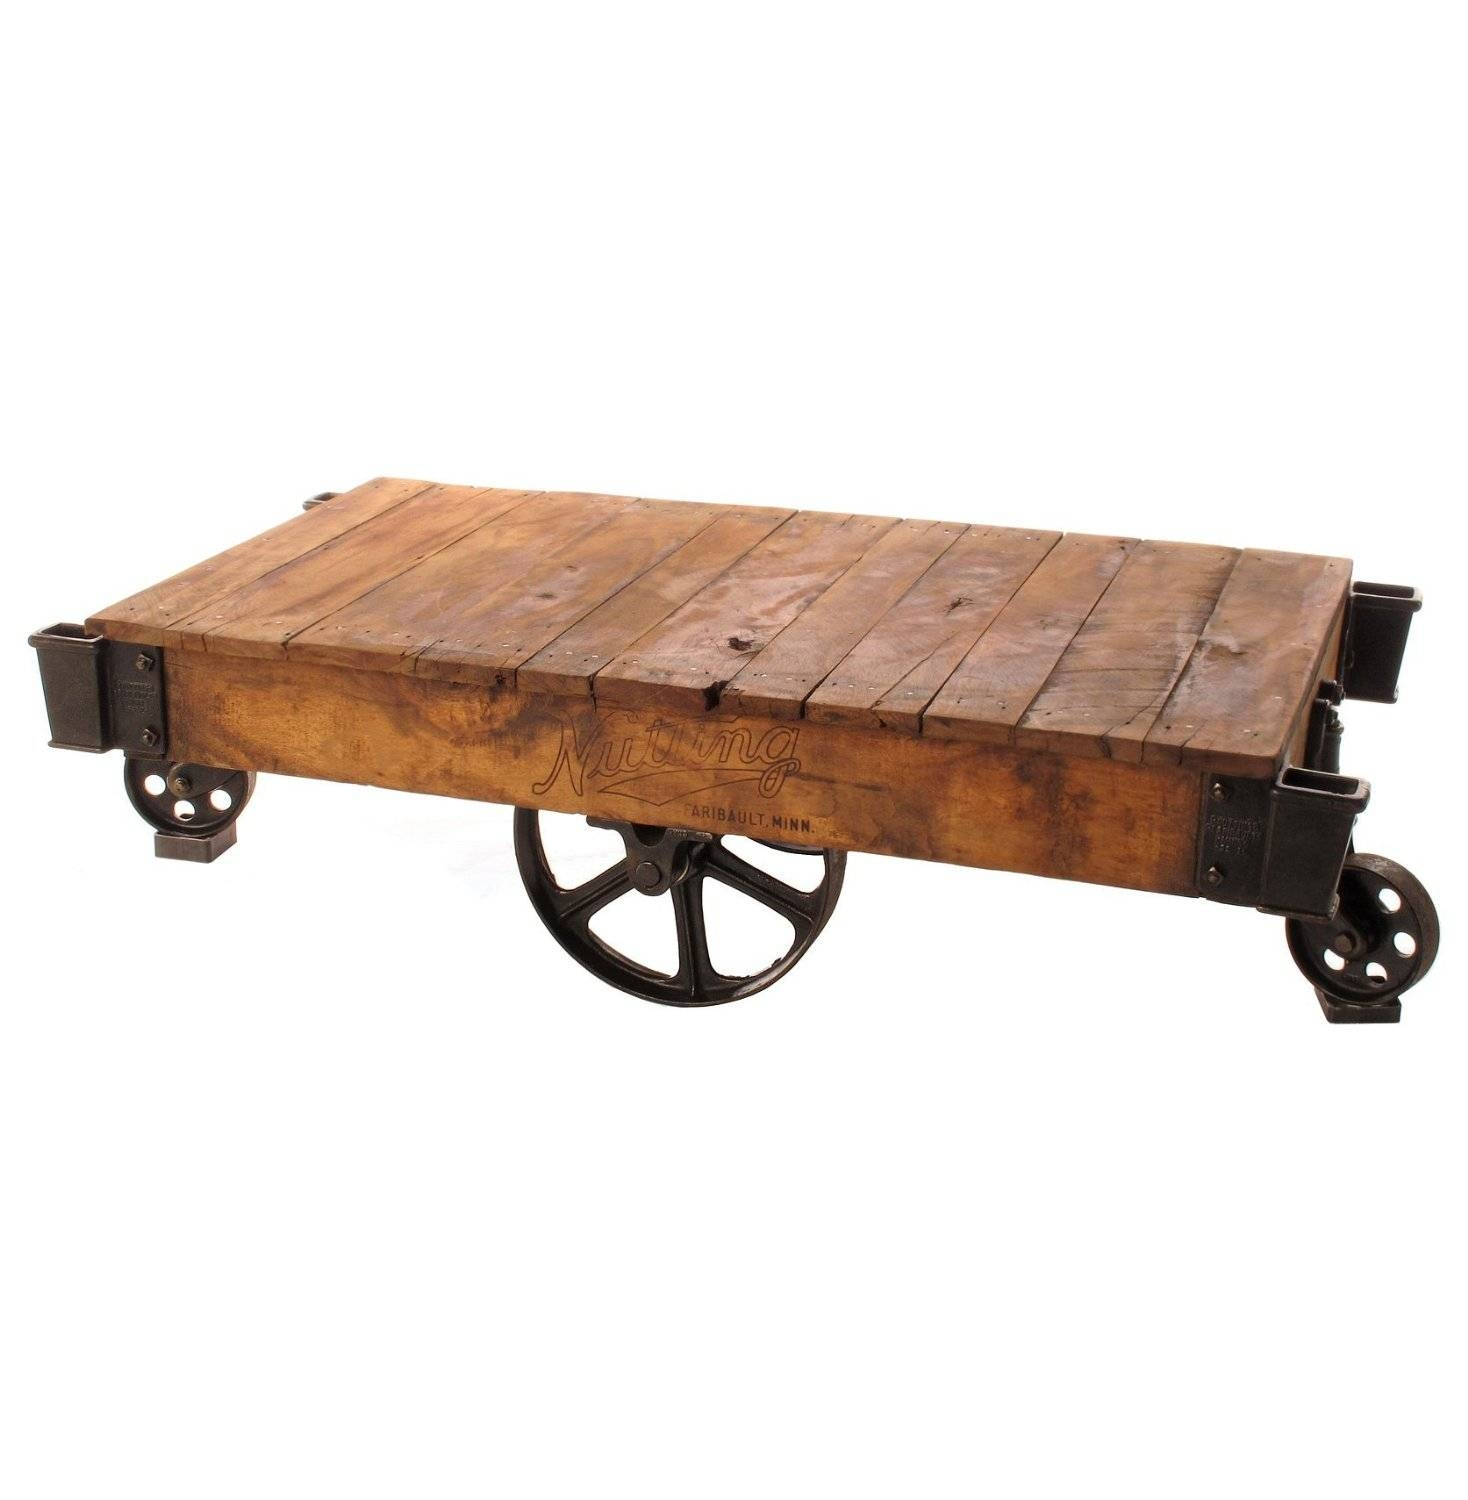 Rustic Coffee Table With Wheels | Arlene Designs pertaining to Rustic Coffee Table With Wheels (Image 25 of 30)